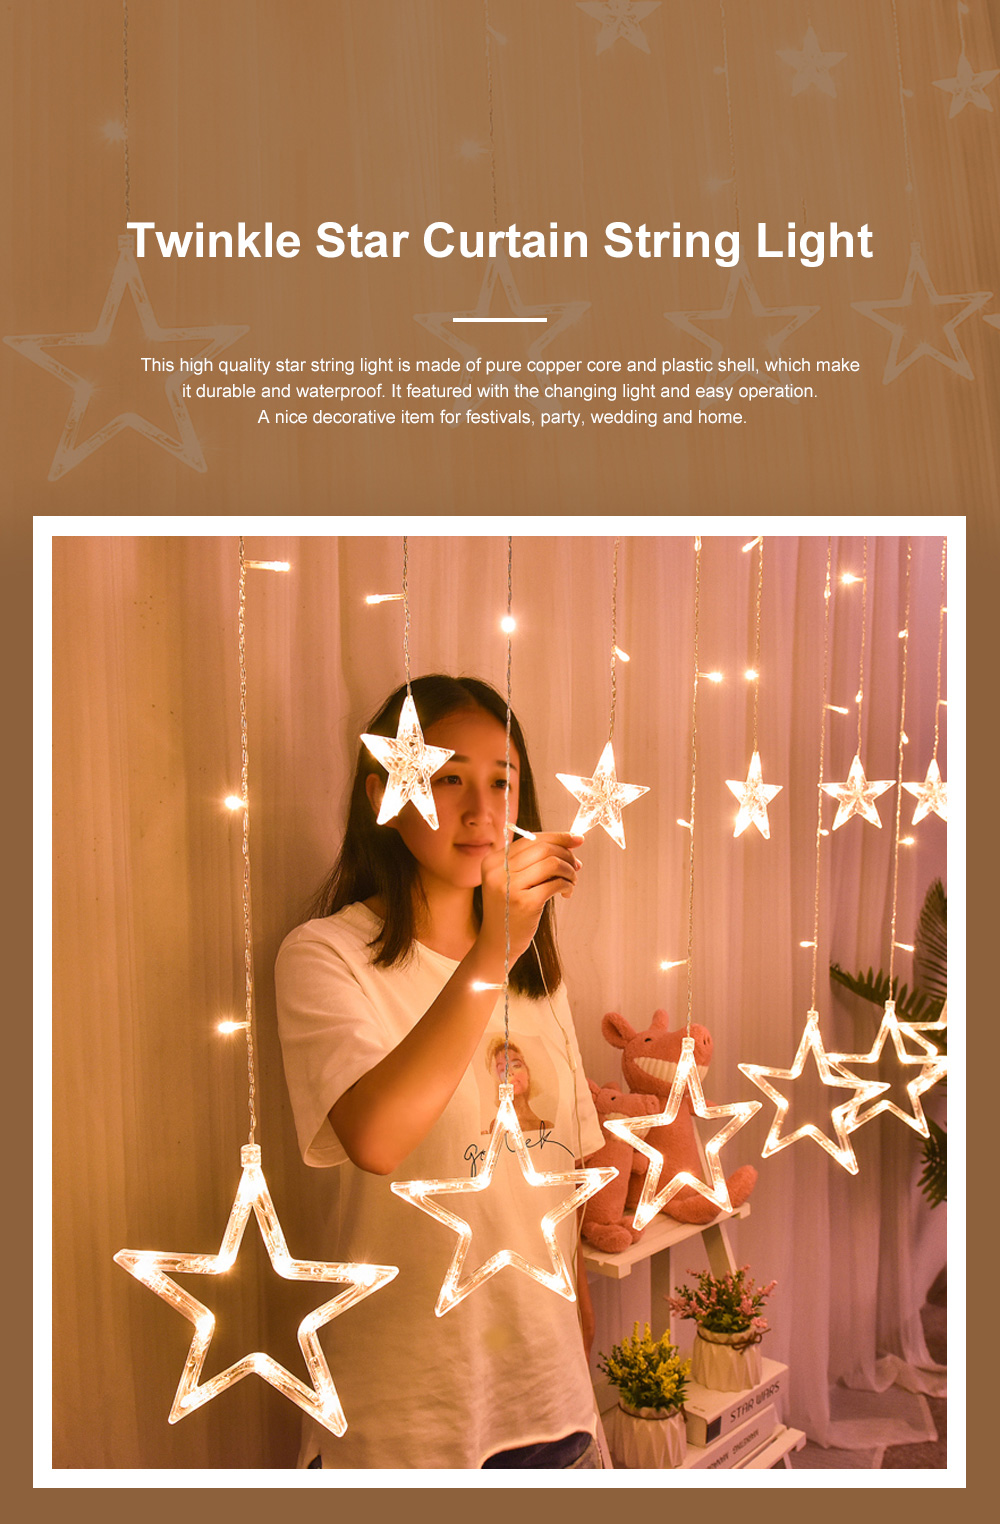 3m Twinkle Star String Lights Waterproof Star Curtain Lights with Color Changing for Wedding Christmas Home Garden Party Festival Decoration 0